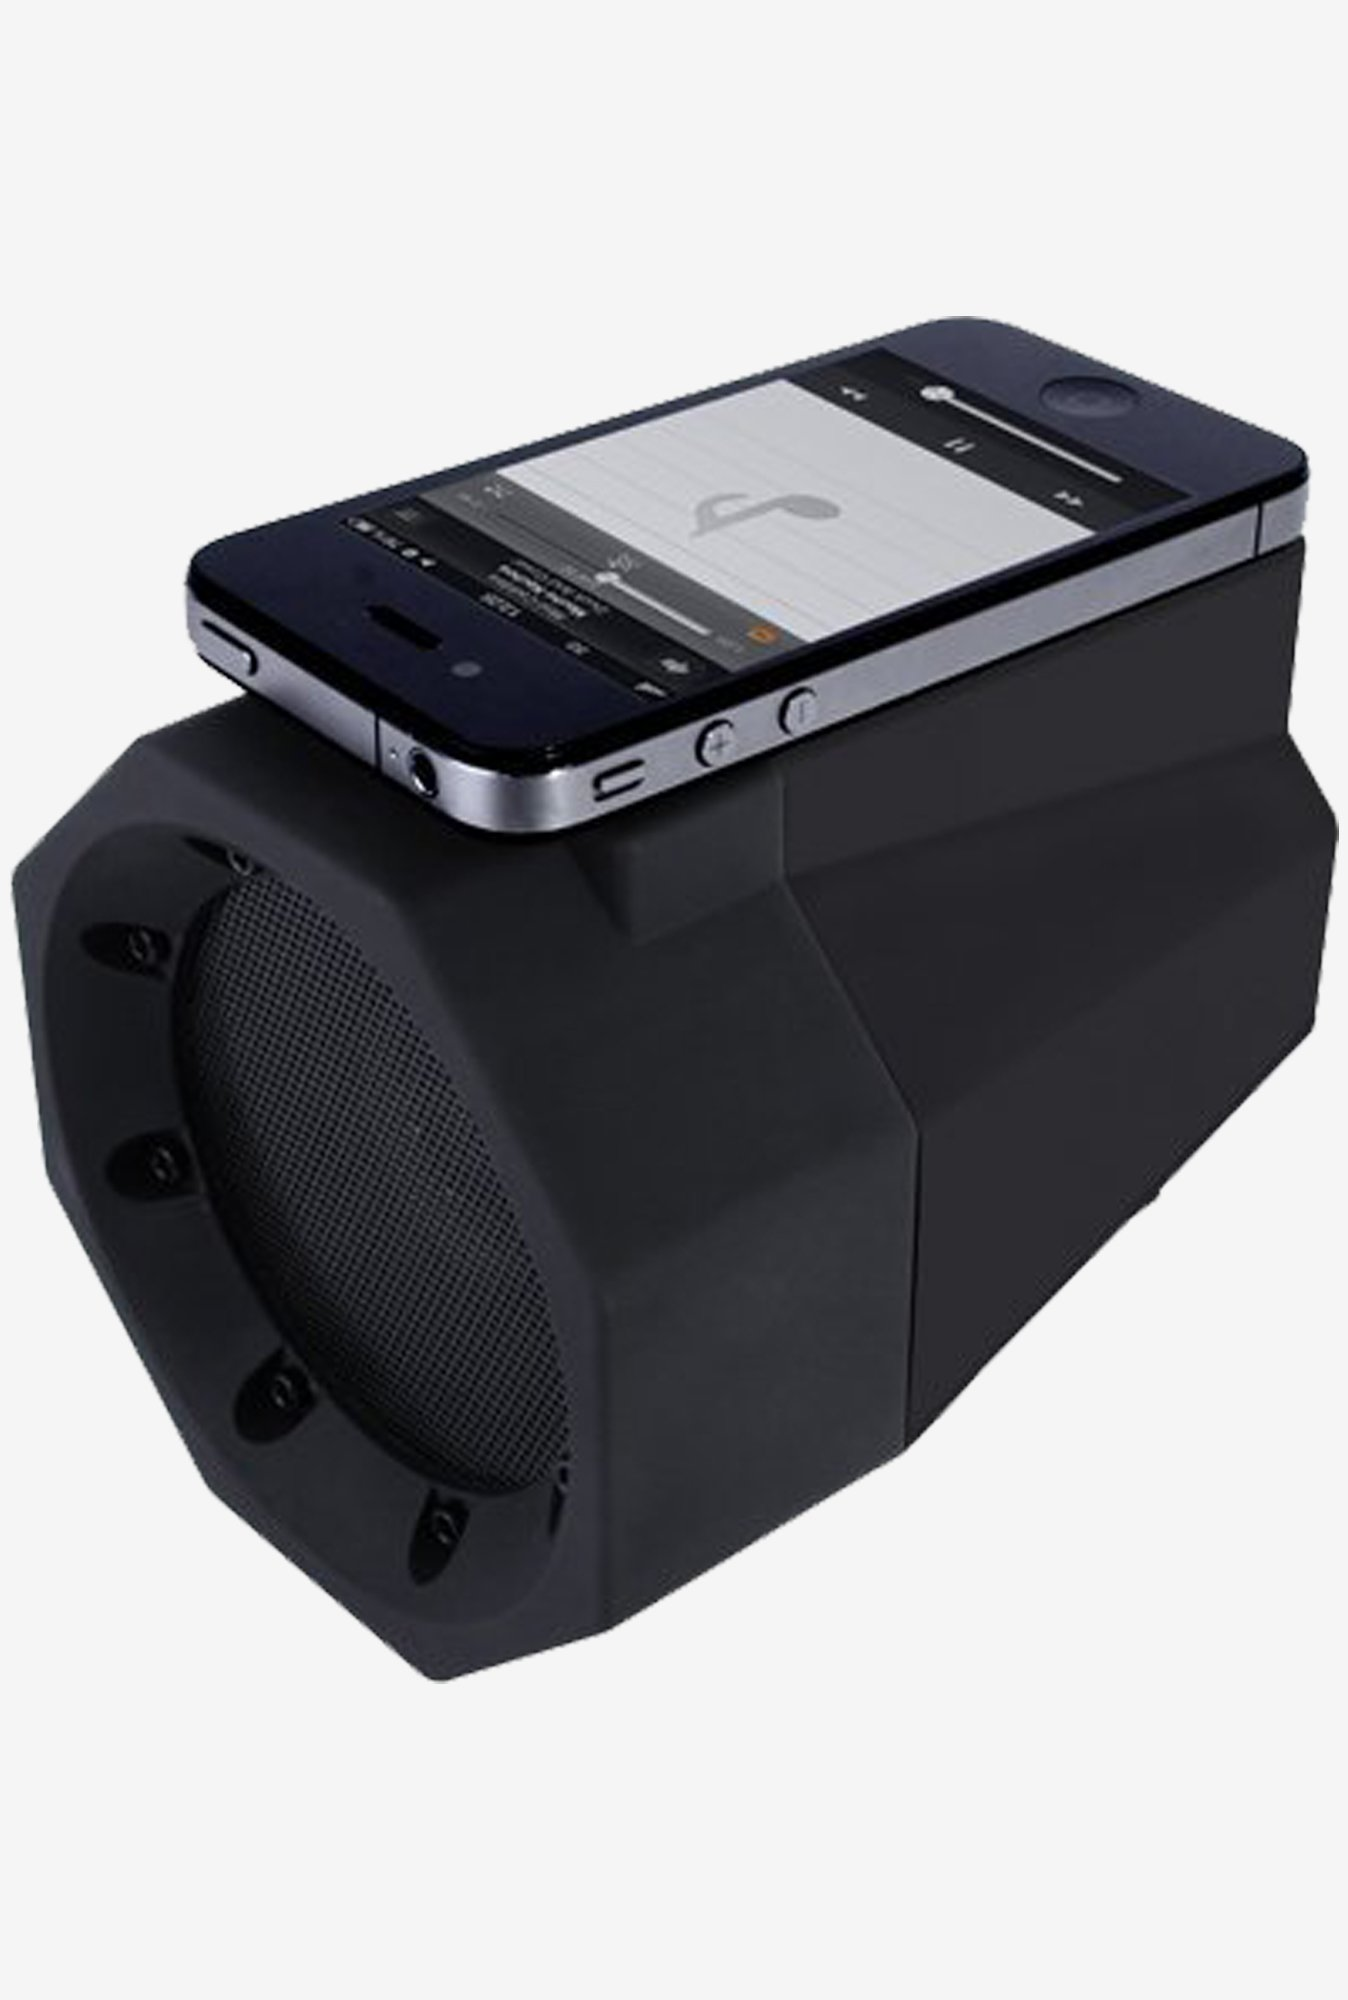 THUMBS UP TOUMINBM Boom Box wireless speaker with (Black)